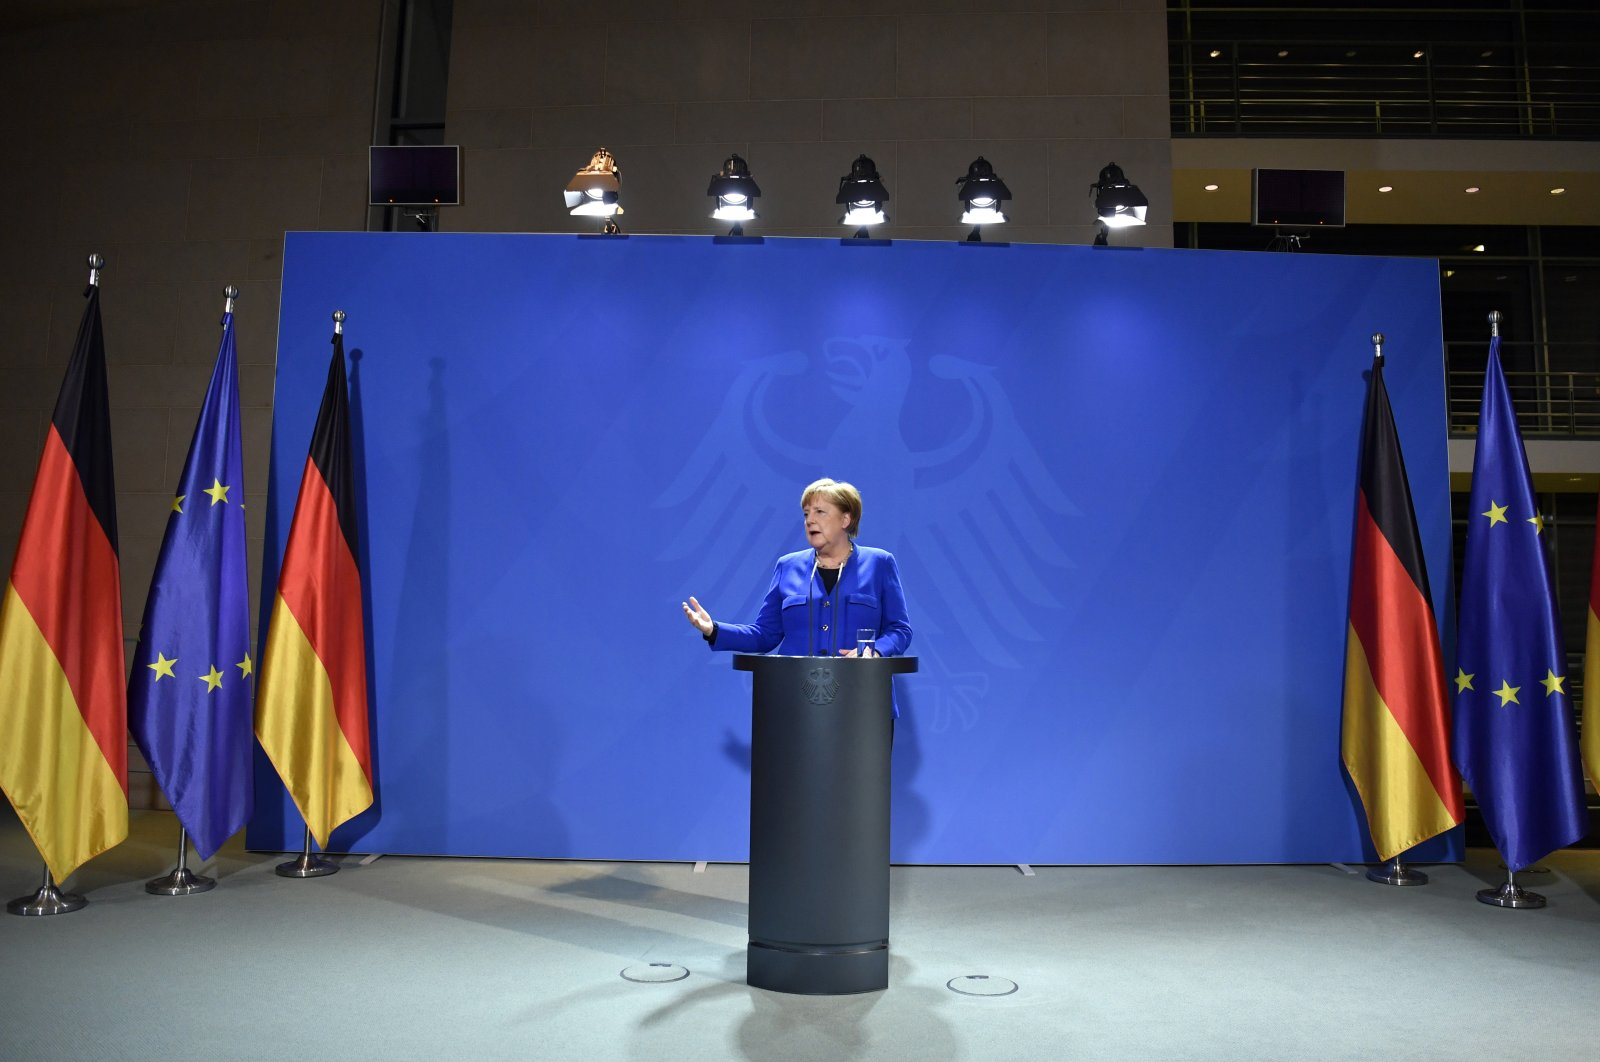 German Chancellor Angela Merkel makes a press statement on the spread of the new coronavirus at the Chancellery, in Berlin, Tuesday, March 17, 2020. (AP Photo)